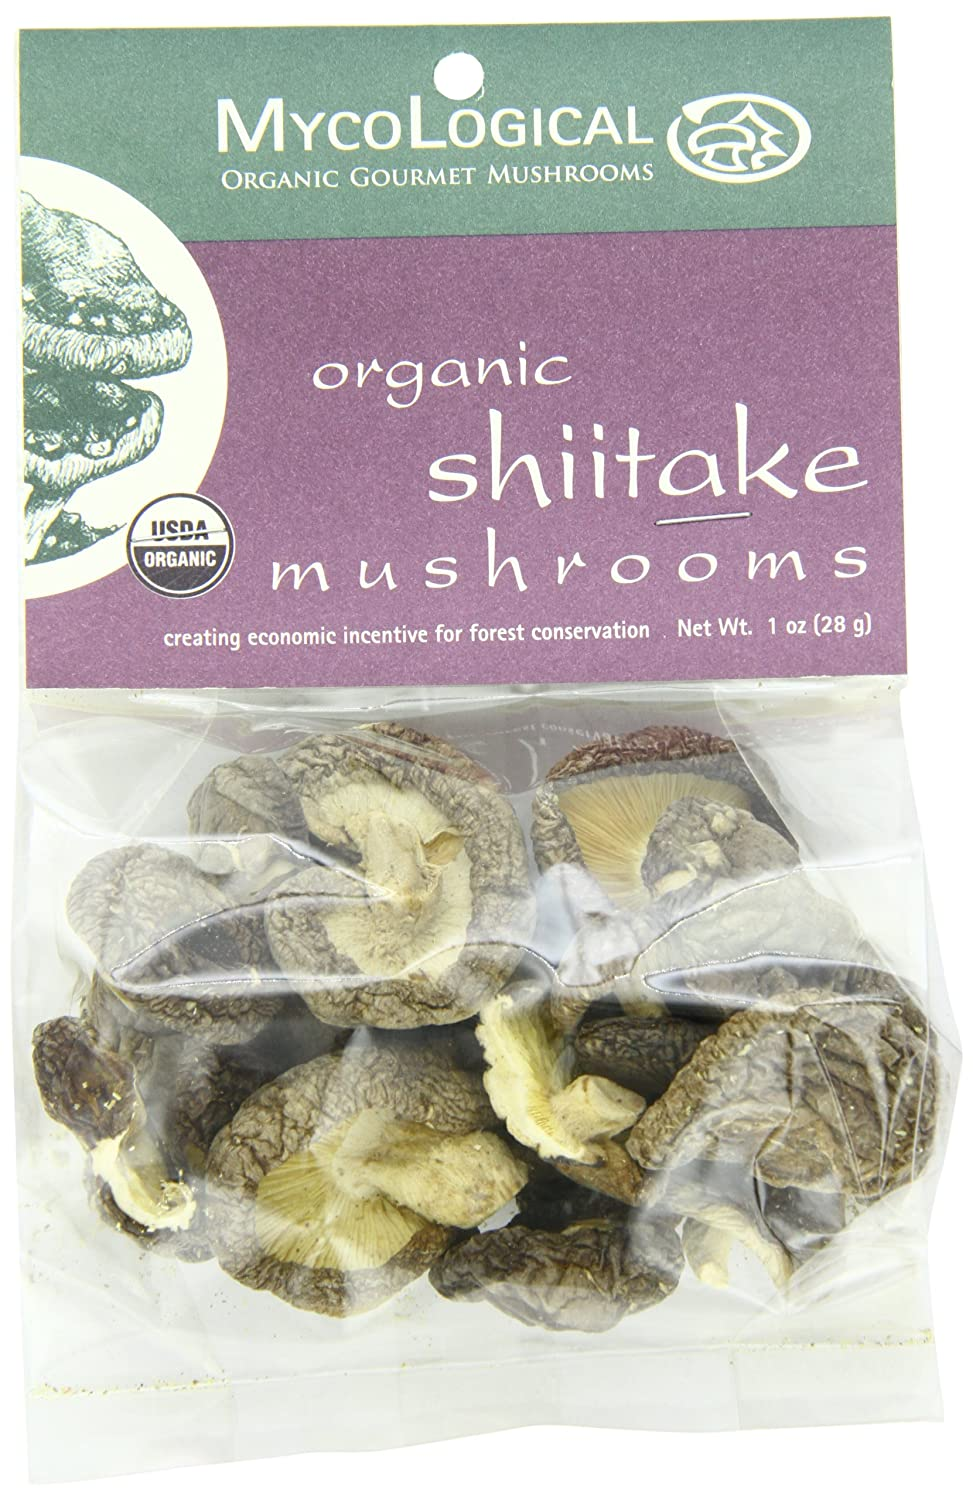 Mycological Dried Organic Shiitake Mushrooms, 1-Ounce Packages (Pack of 6)